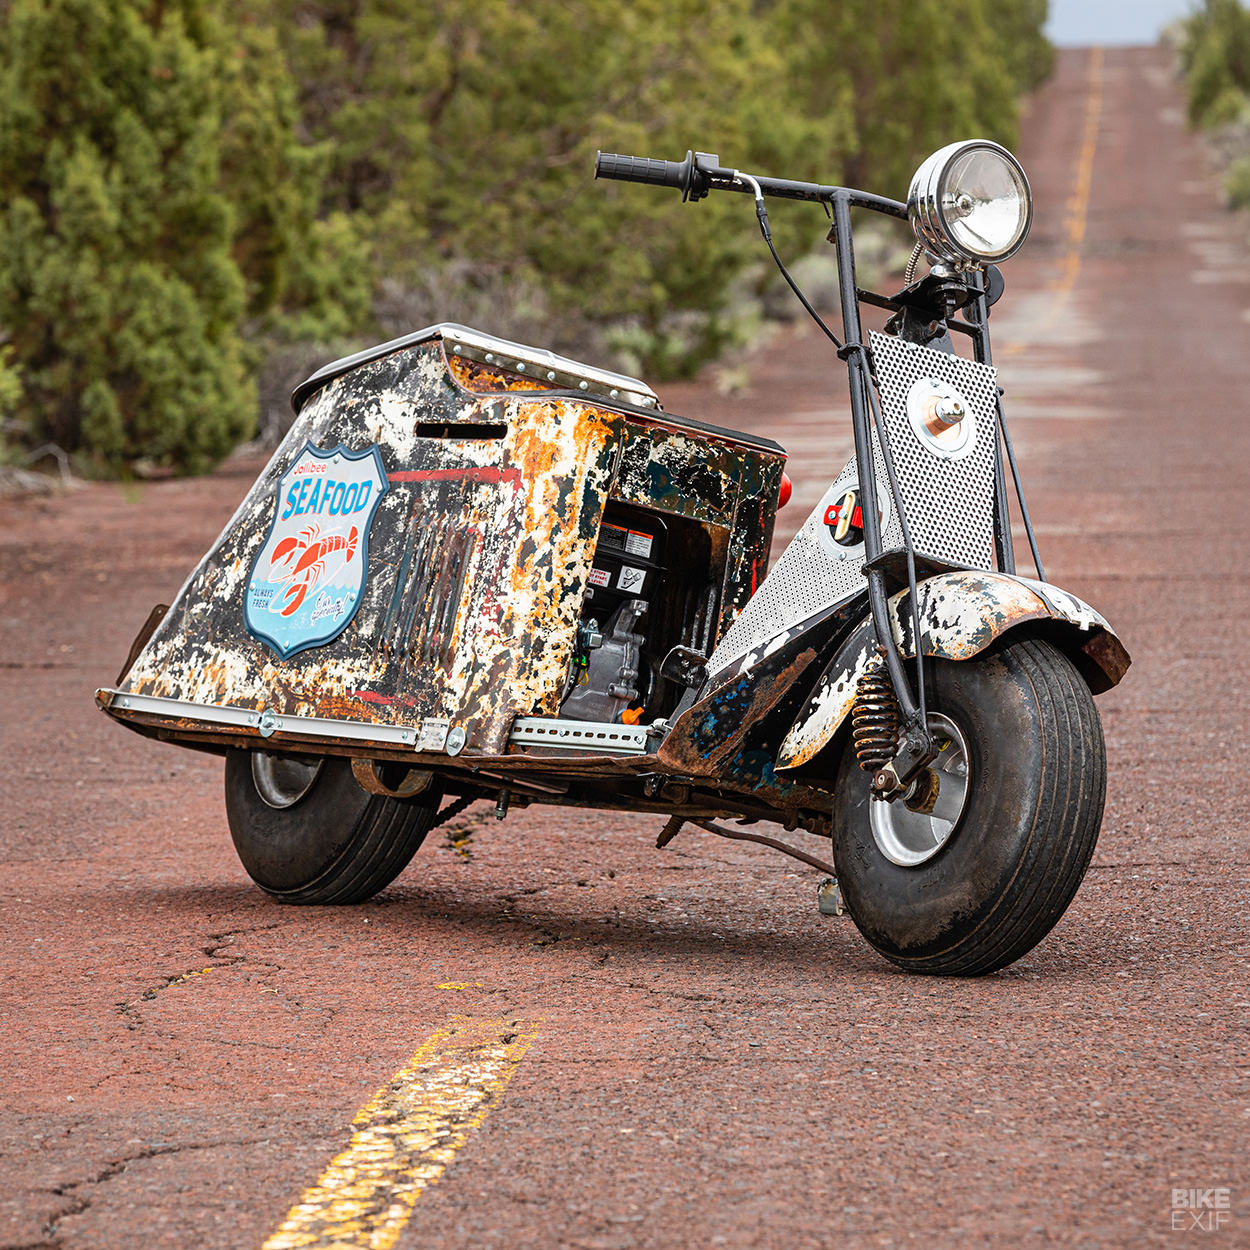 1947 Cushman 60 Series motor scooter